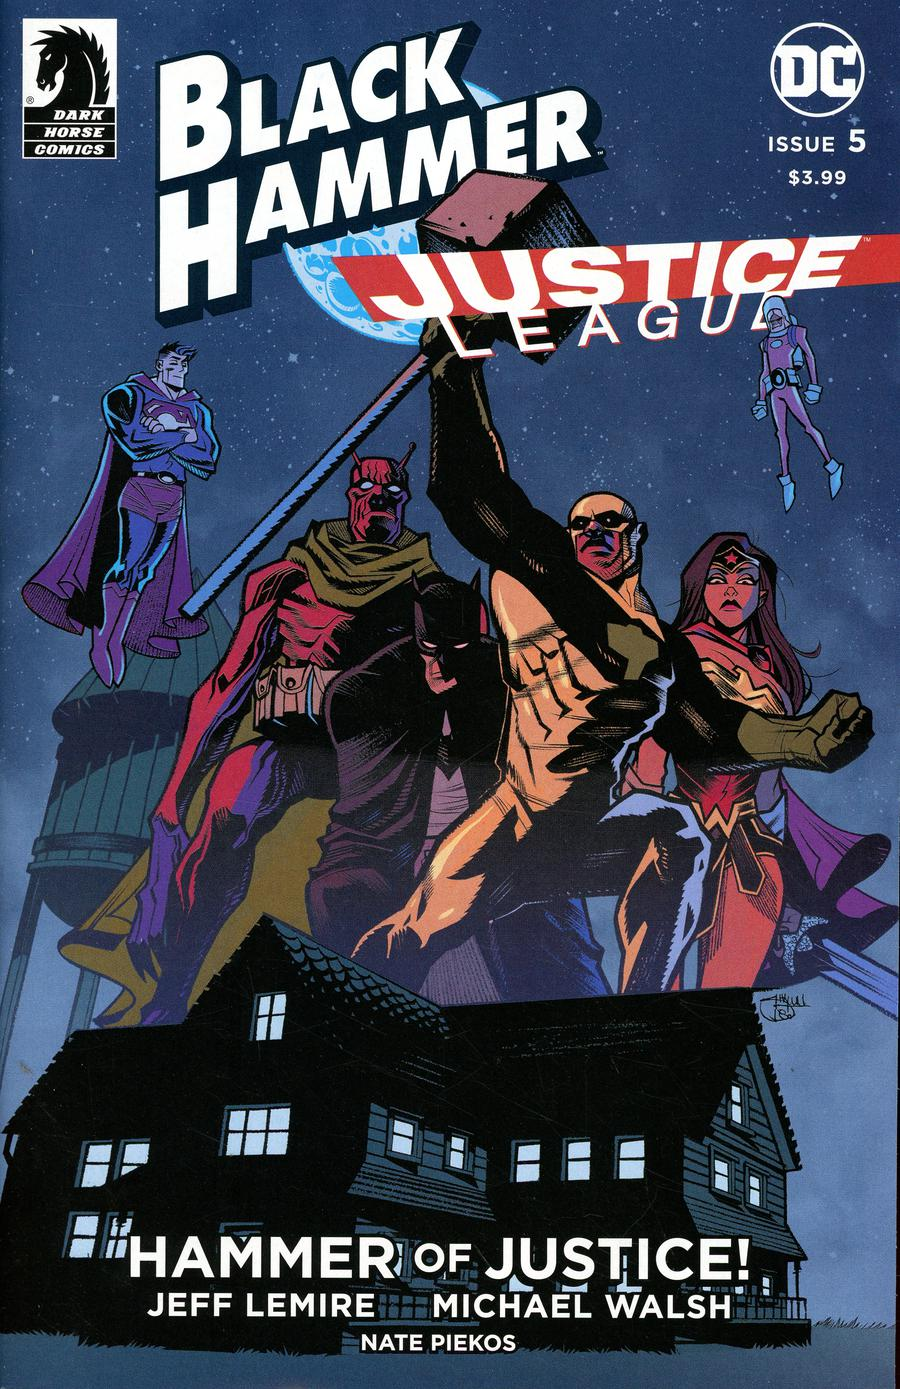 Black Hammer Justice League Hammer Of Justice #5 Cover C Variant Shawn Crystal Cover